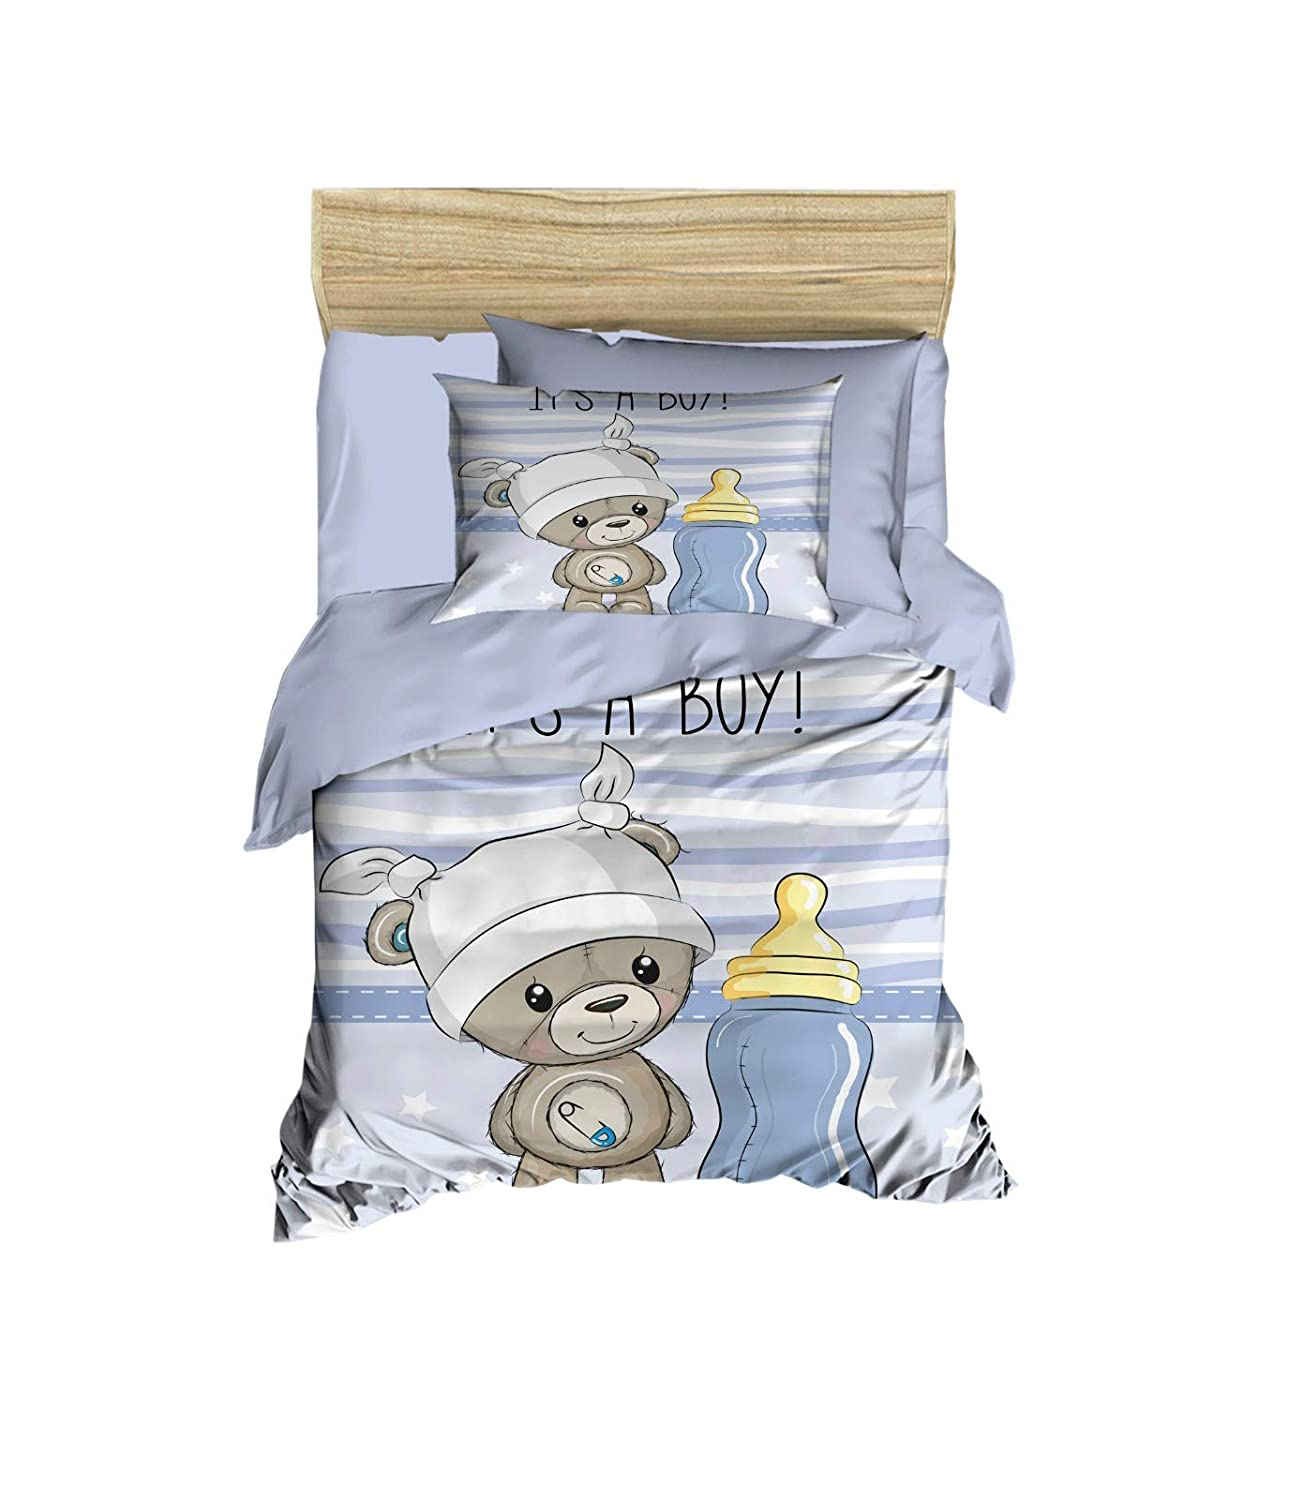 100% Cotton Baby Bedding Bear Themed Nursery Baby Bed Set, Toddlers Crib Bedding for Baby Boys, Duvet Cover Set with Comforter, 5 Pieces 61K0tUR5GHL